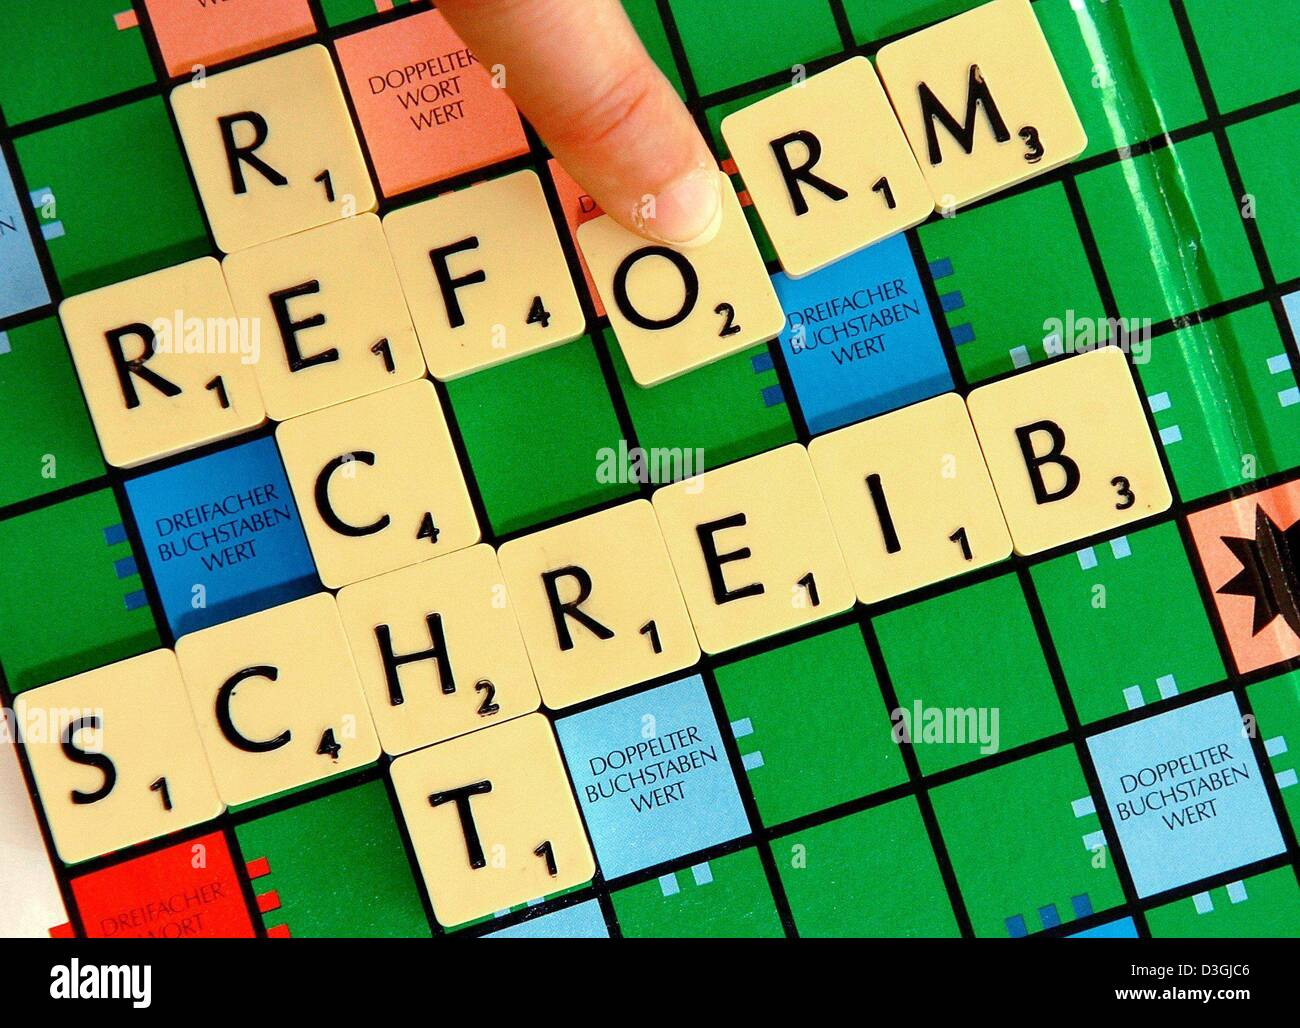 dpa a finger moves the letter o into place to form the word rechtschreibreform spelling reform on a scrabble board in schwerin germany